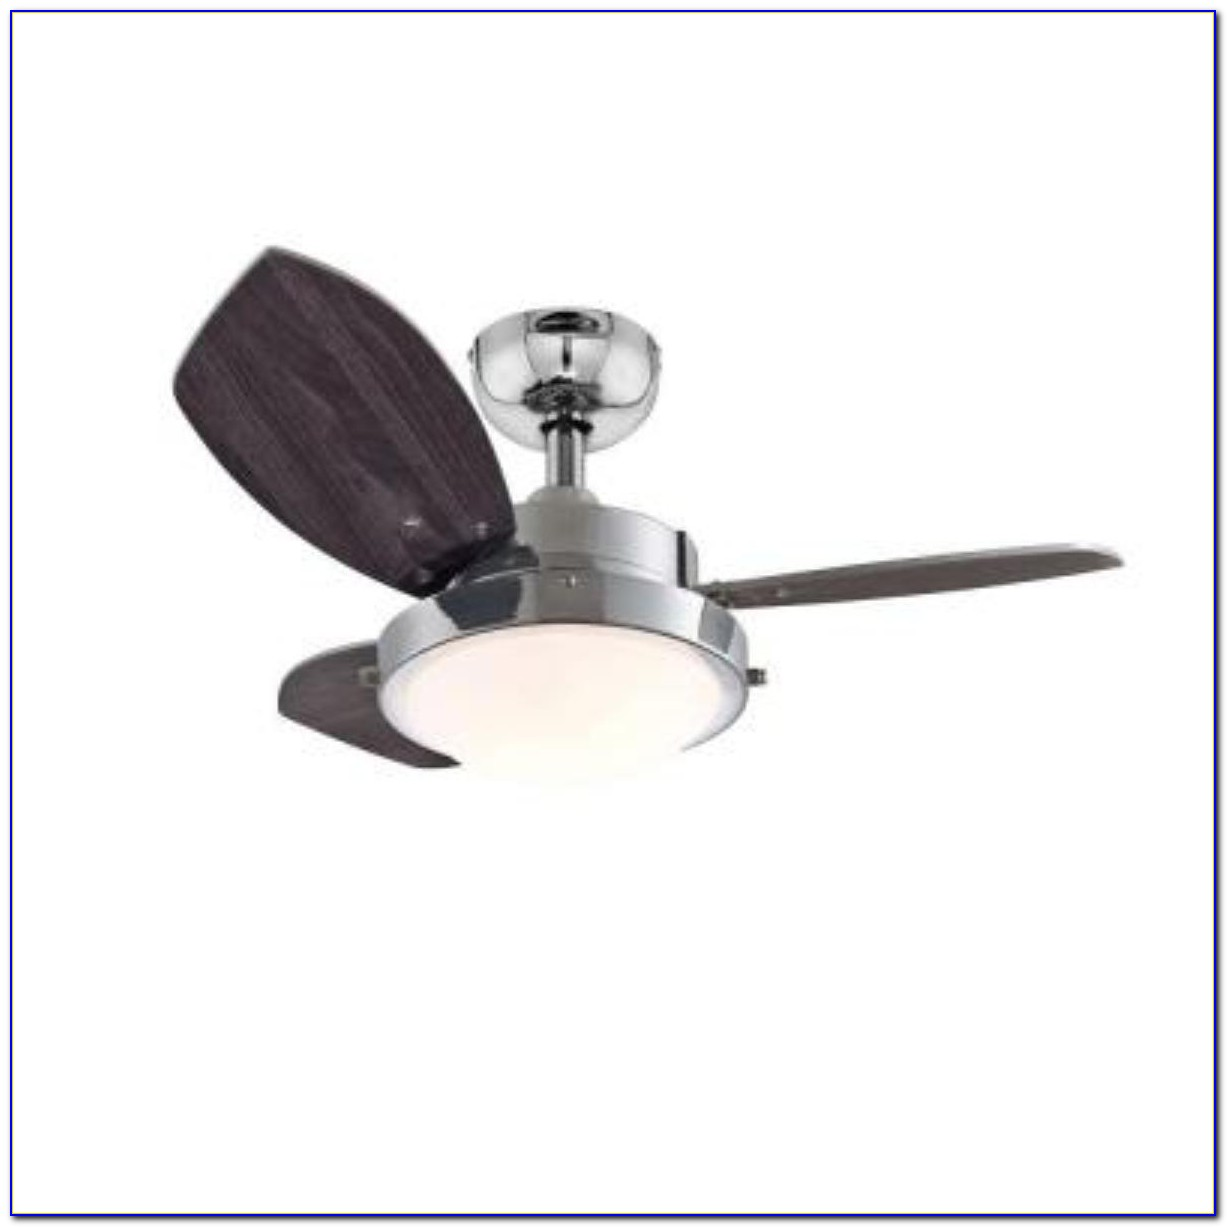 3 Blade Ceiling Fan Vs 5